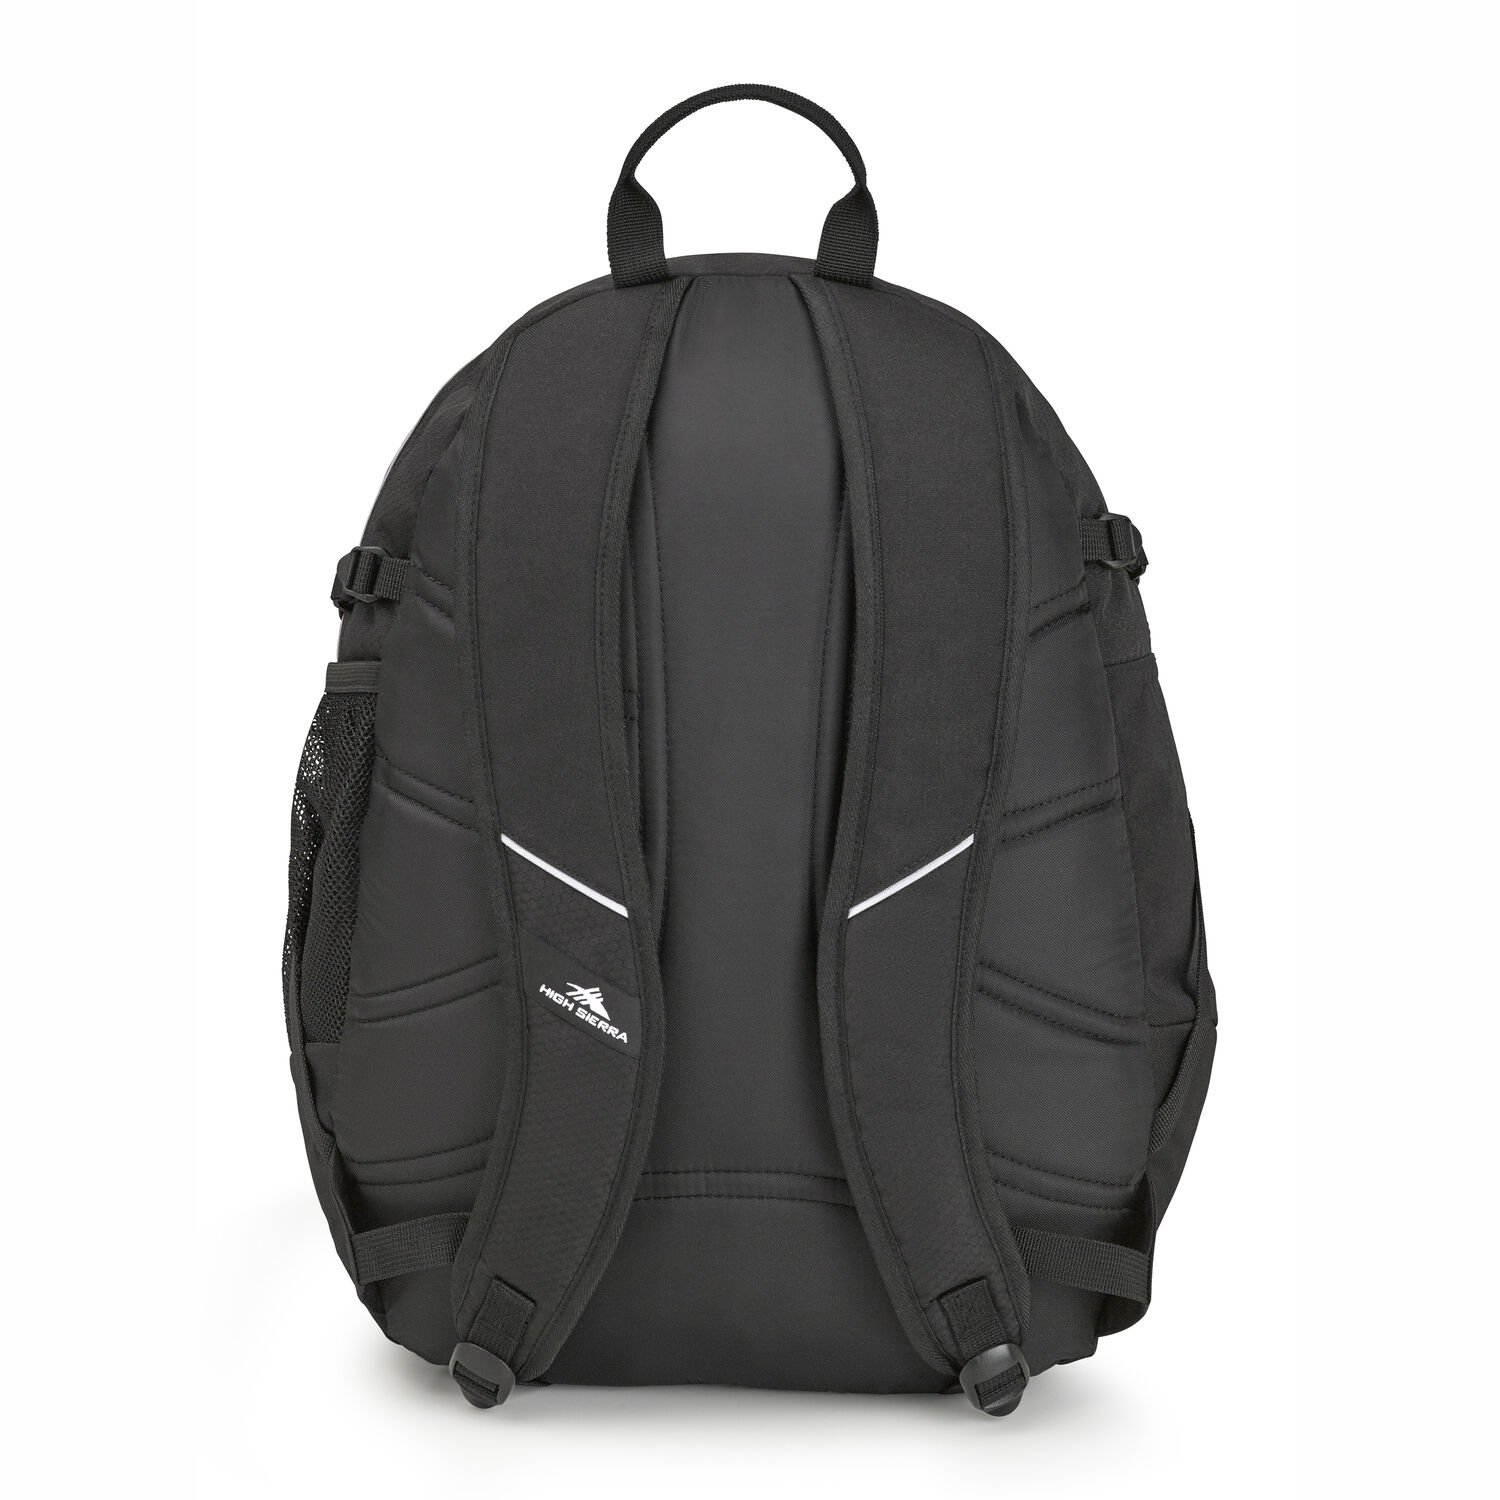 c117a4198 High Sierra Fatboy Backpack in the color Black.